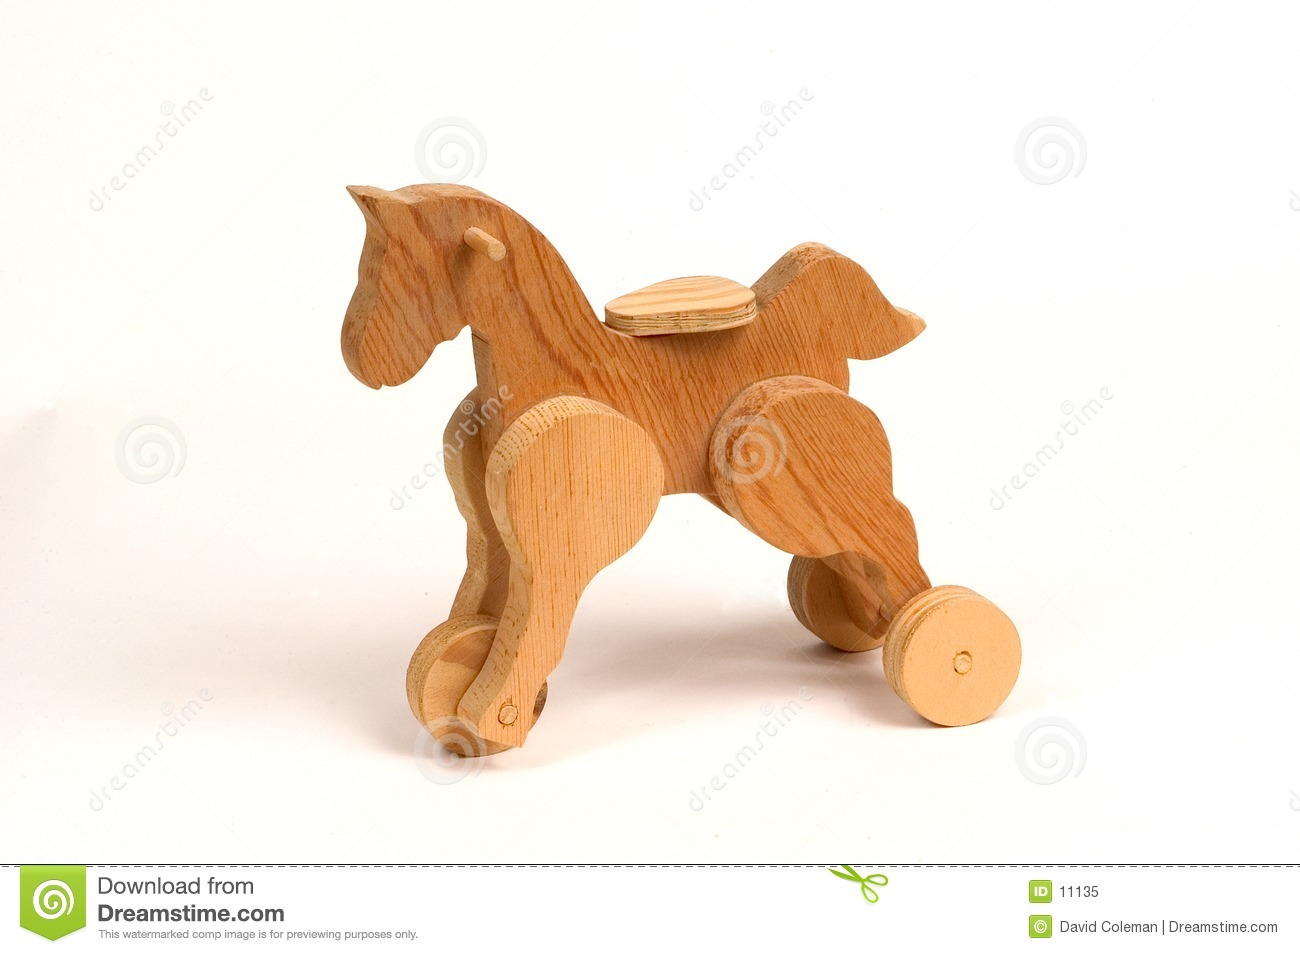 Wooden Pull Toy Royalty Free Stock Photo - Image: 11135